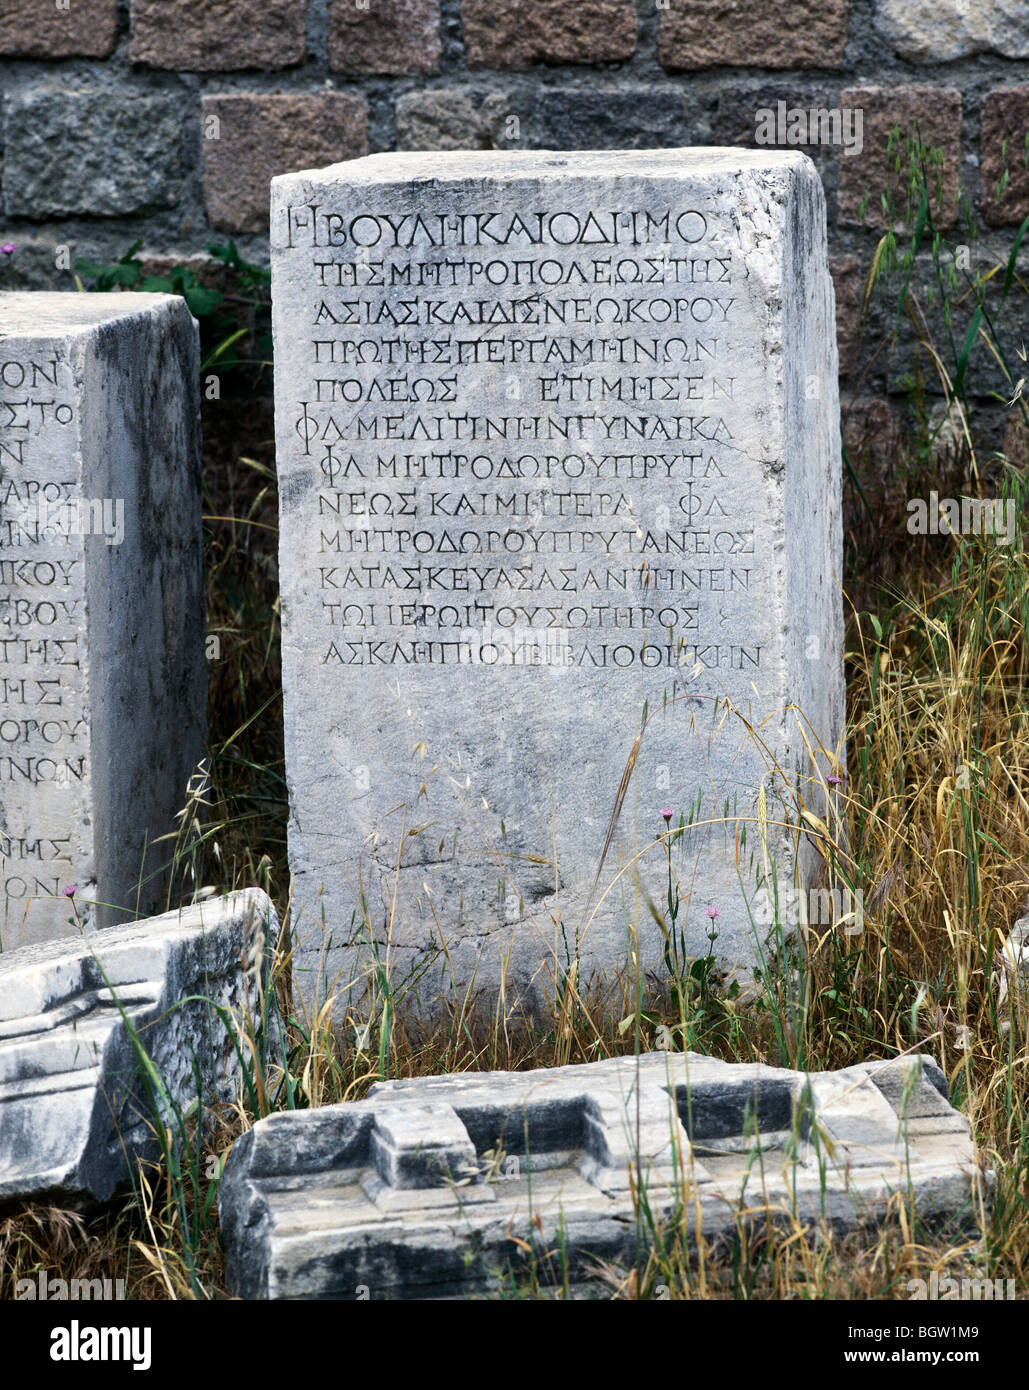 Stone in Greek script, Pergamon, Bergama Turkey, Asia - Stock Image